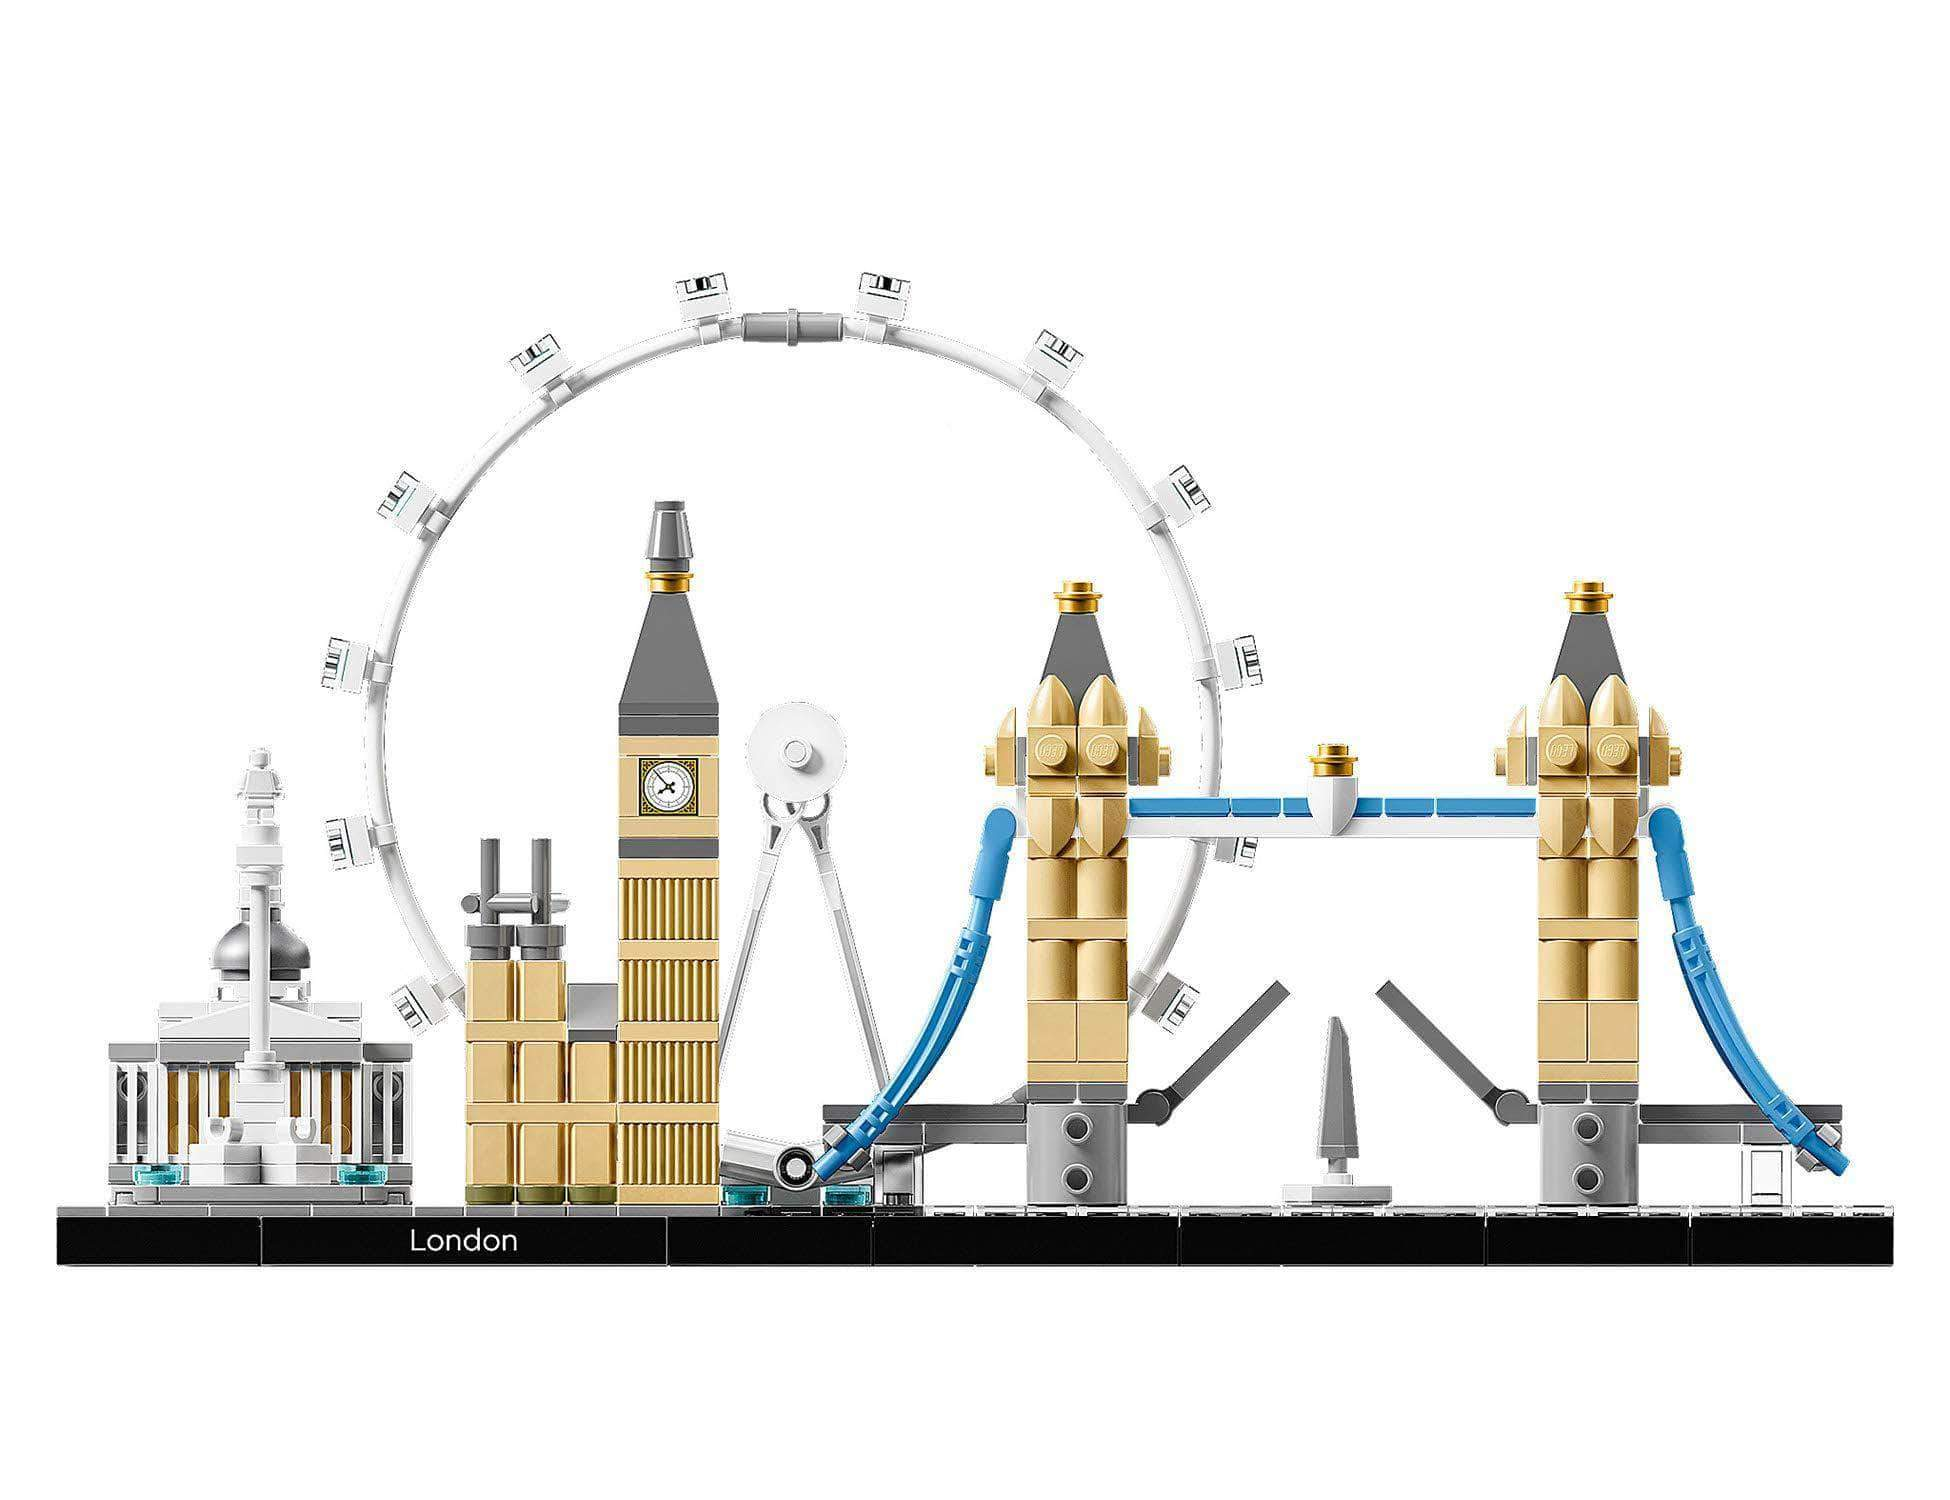 Amazon LEGO Architecture - Londres, Set de Construcción del Skyline con Big Ben, London Eye, el Puente de la Torre, Regalo Coleccionable con Detalles (21034)